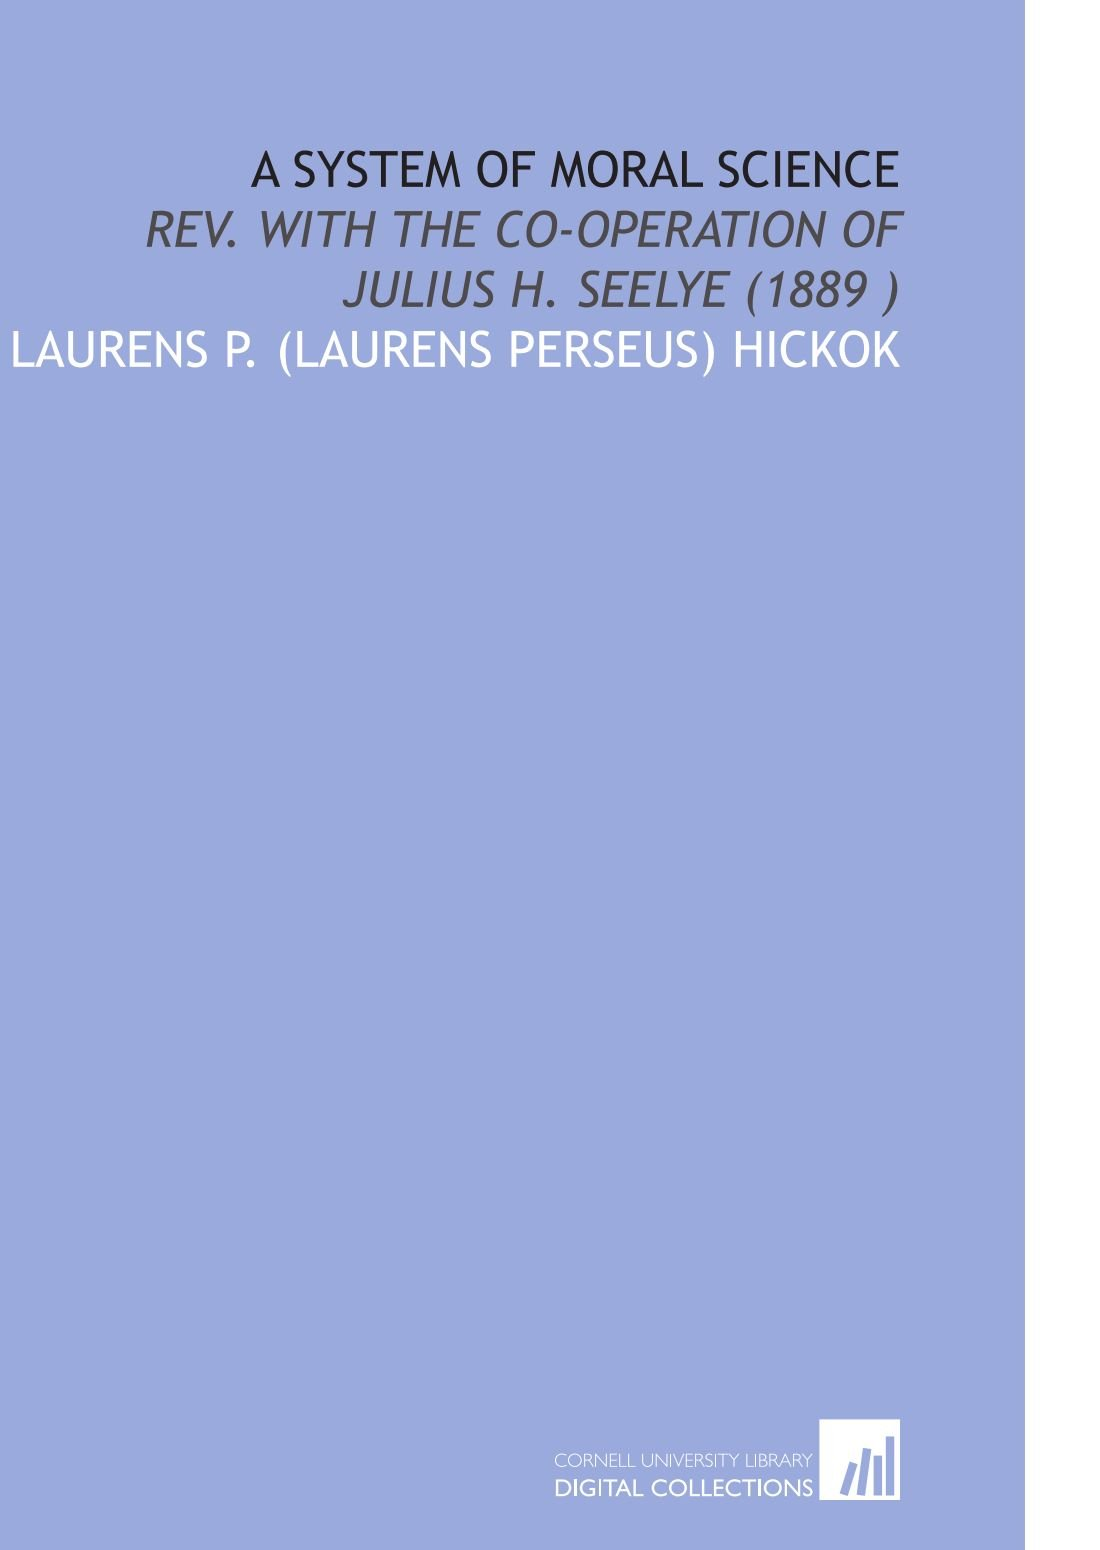 Download A System of Moral Science: Rev. With the Co-Operation of Julius H. Seelye (1889 ) pdf